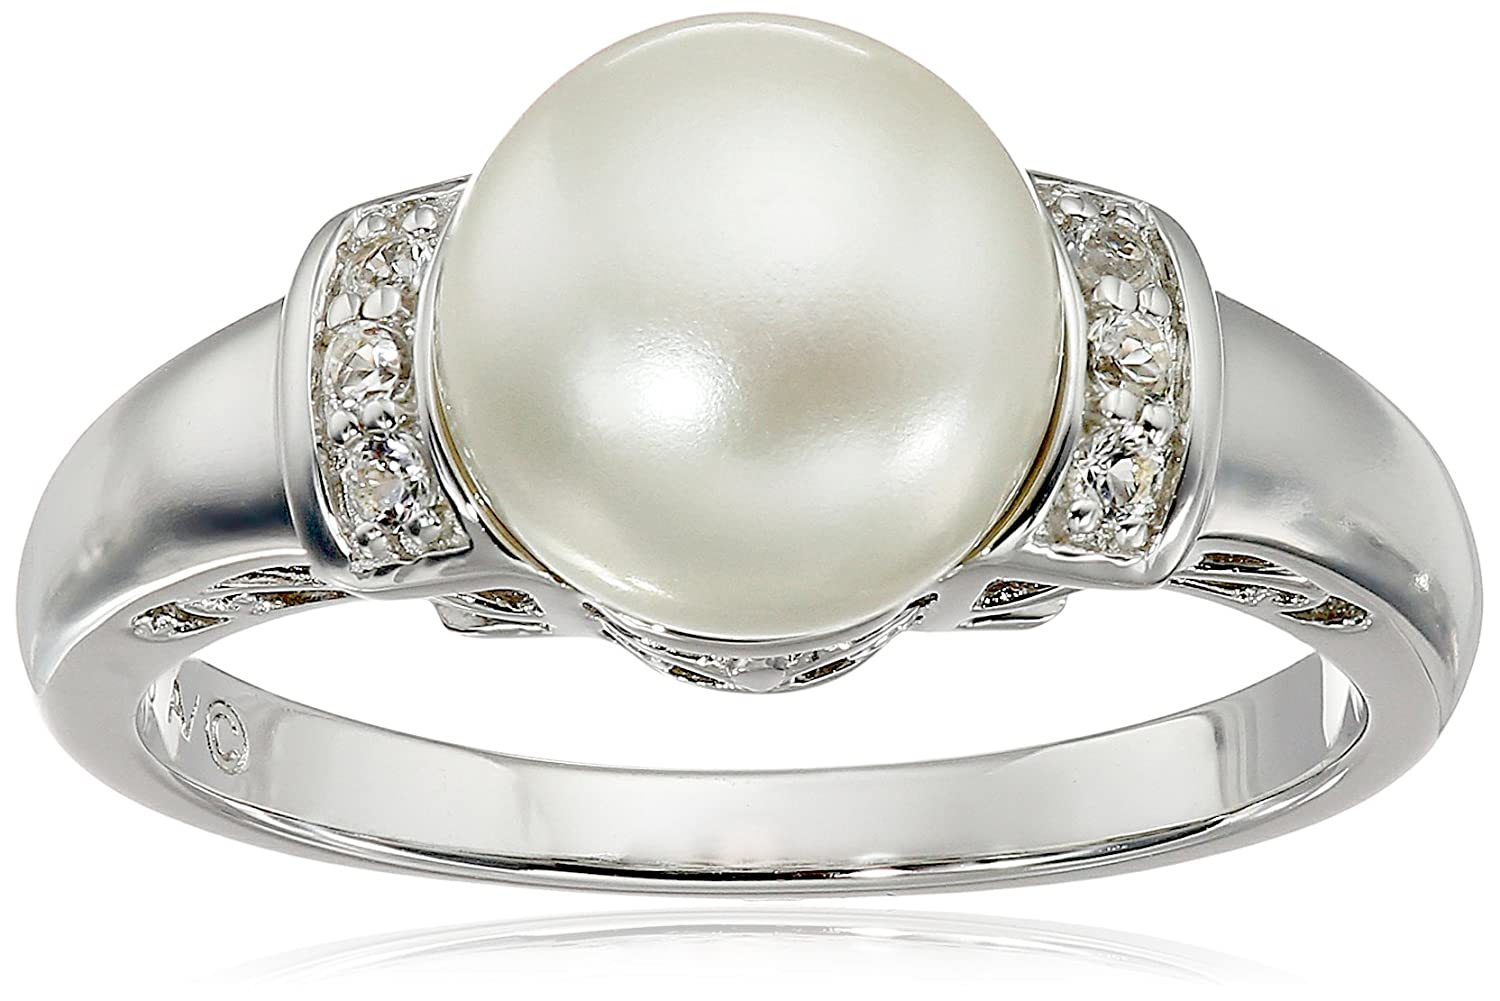 10k White Gold Freshwater Cultured Pearl And Diamond Ring To Enjoy High Reputation At Home And Abroad Jewelry & Watches